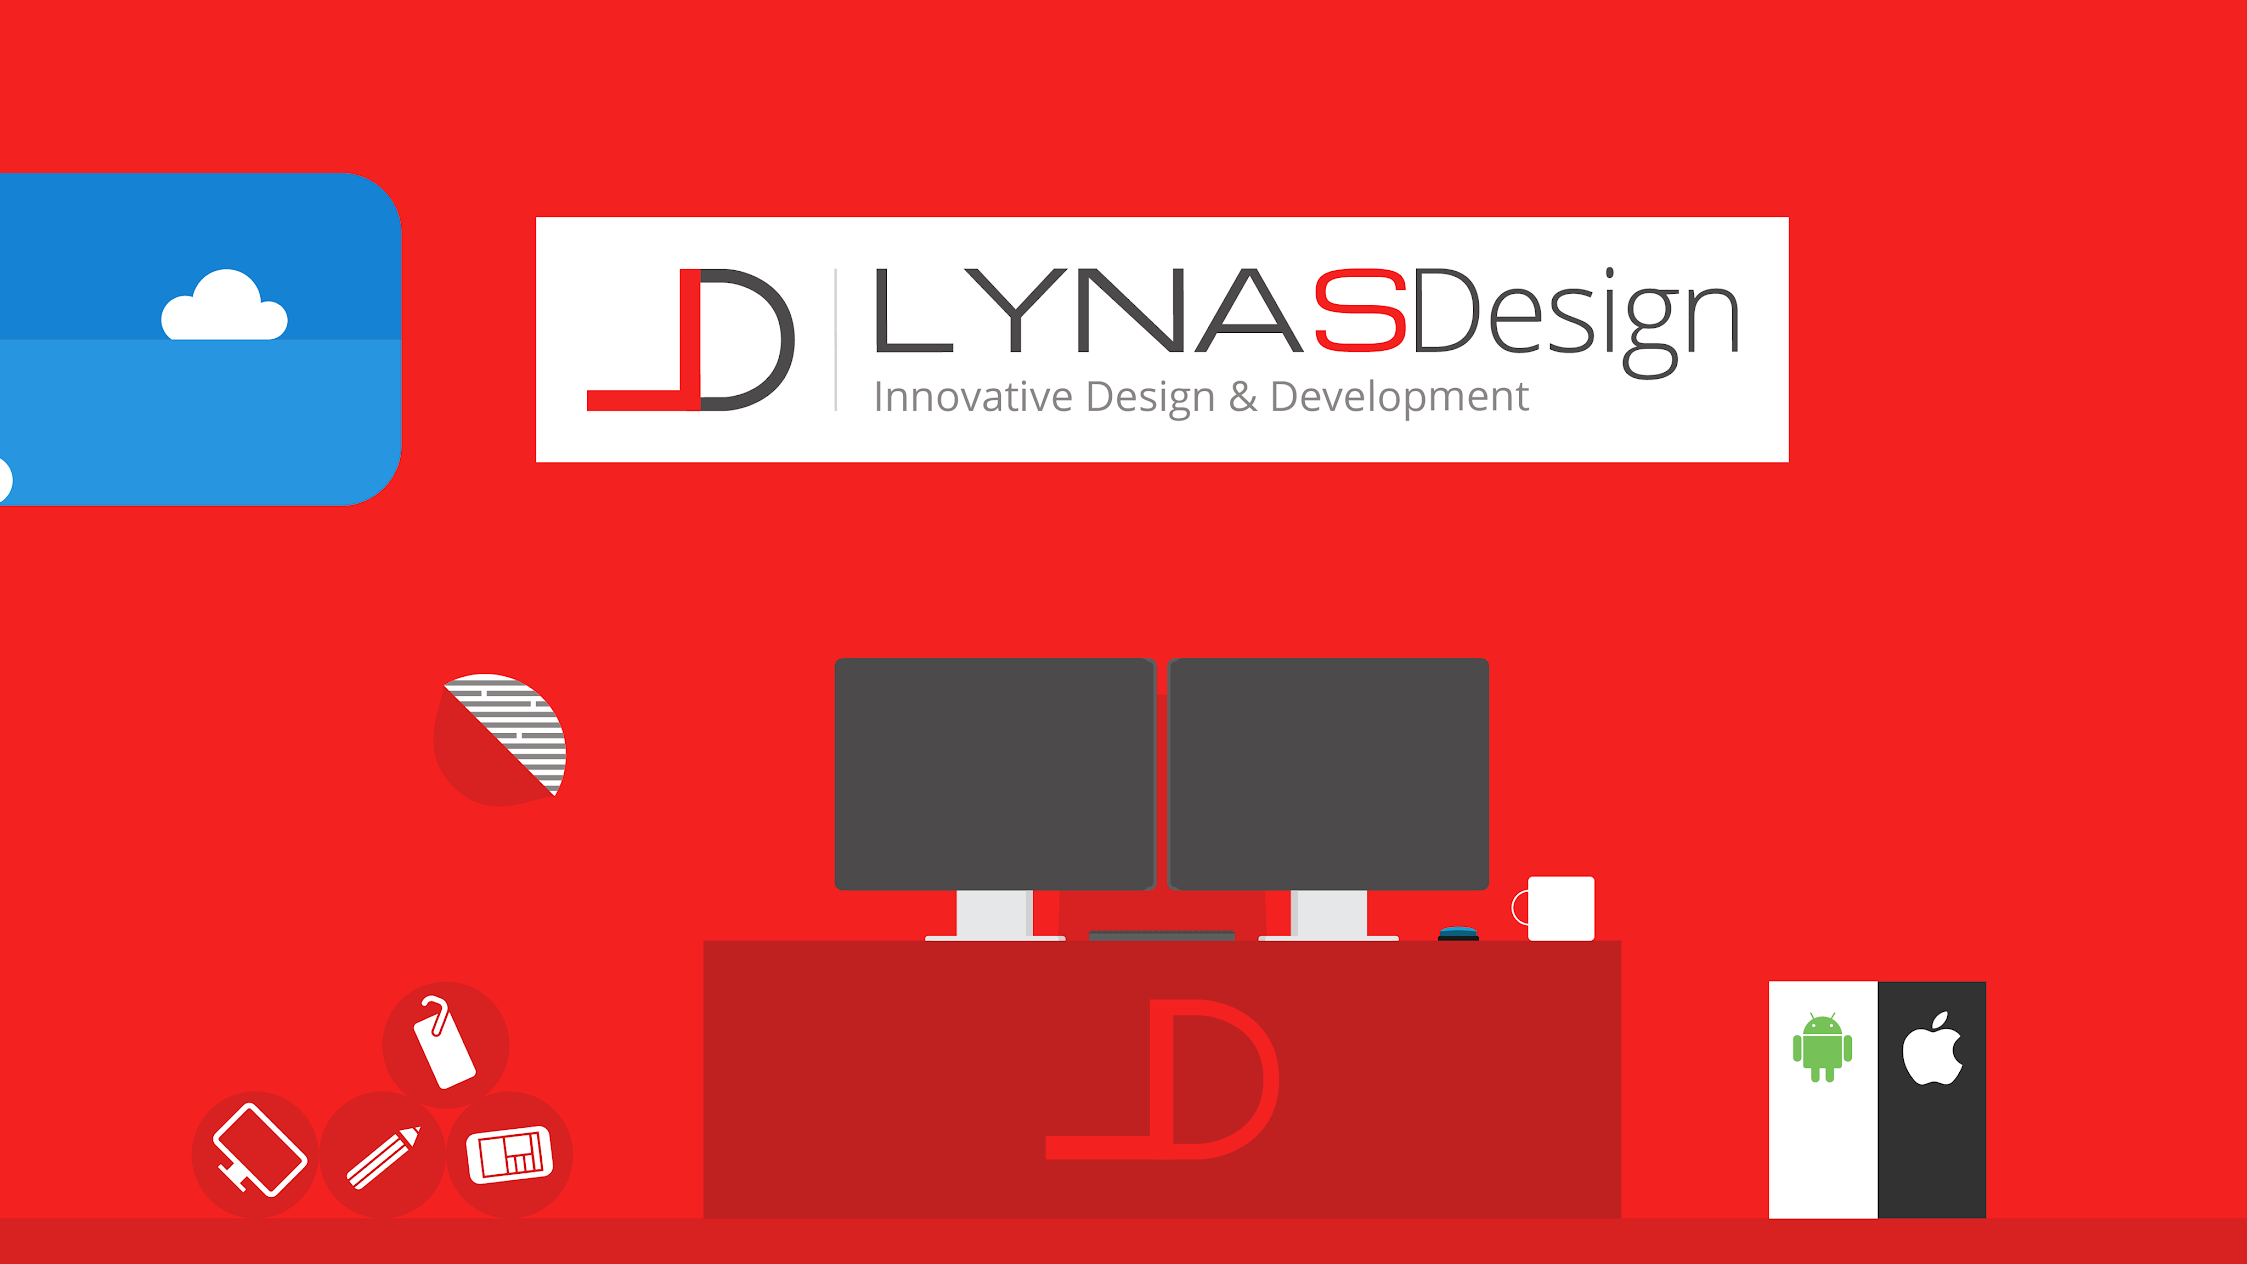 LYNASDesign